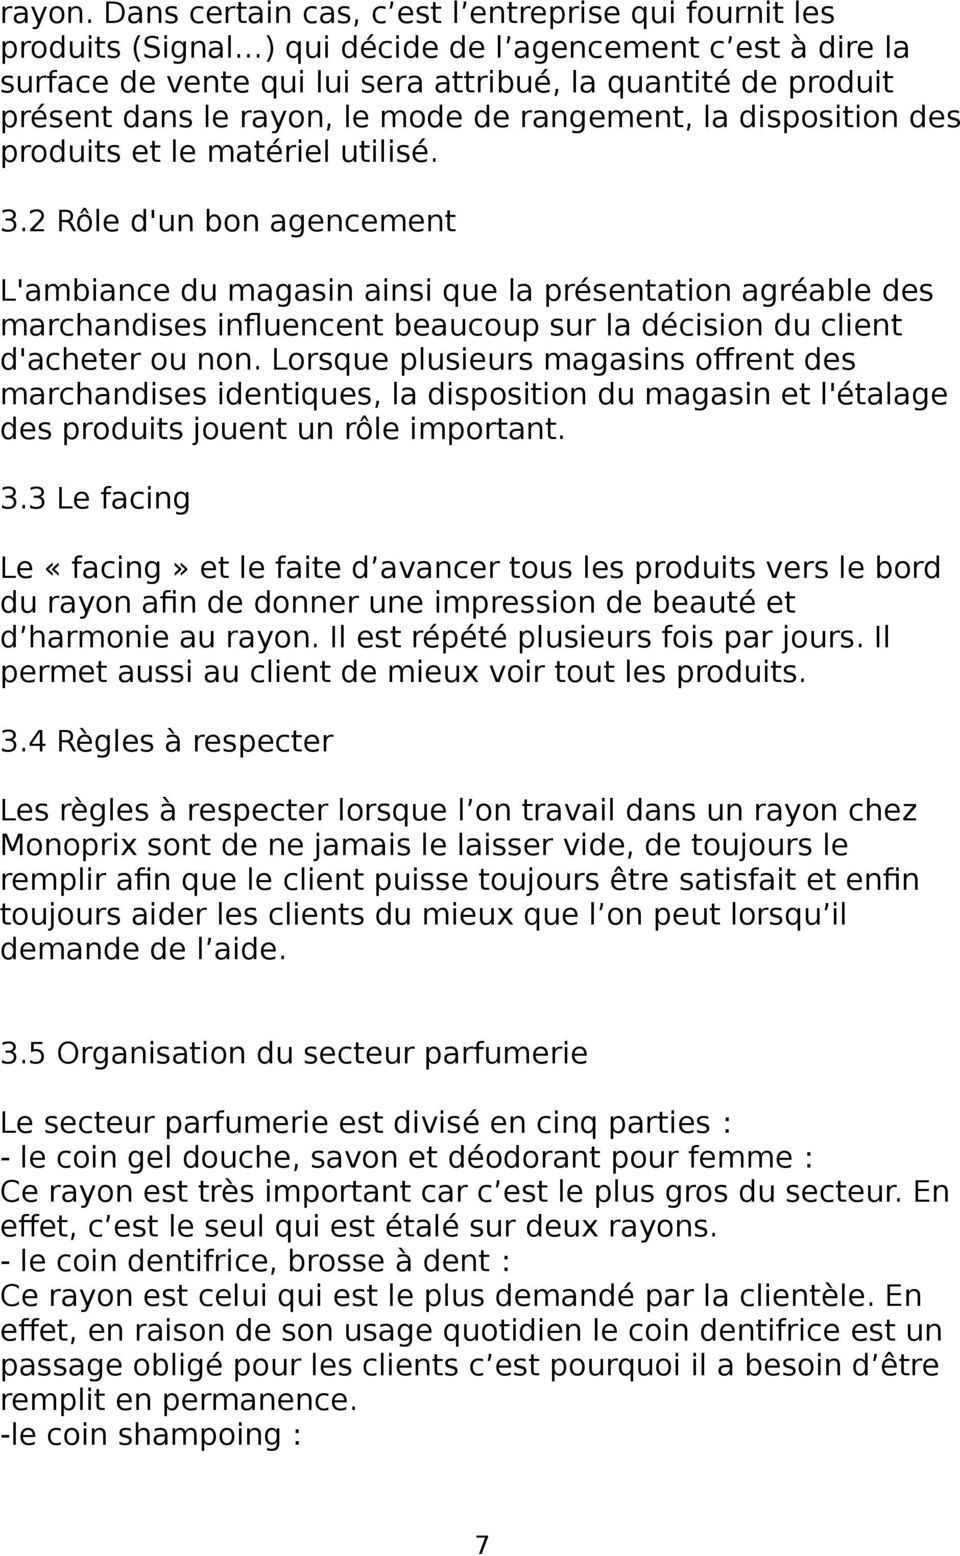 rapport de stage pdf informatique